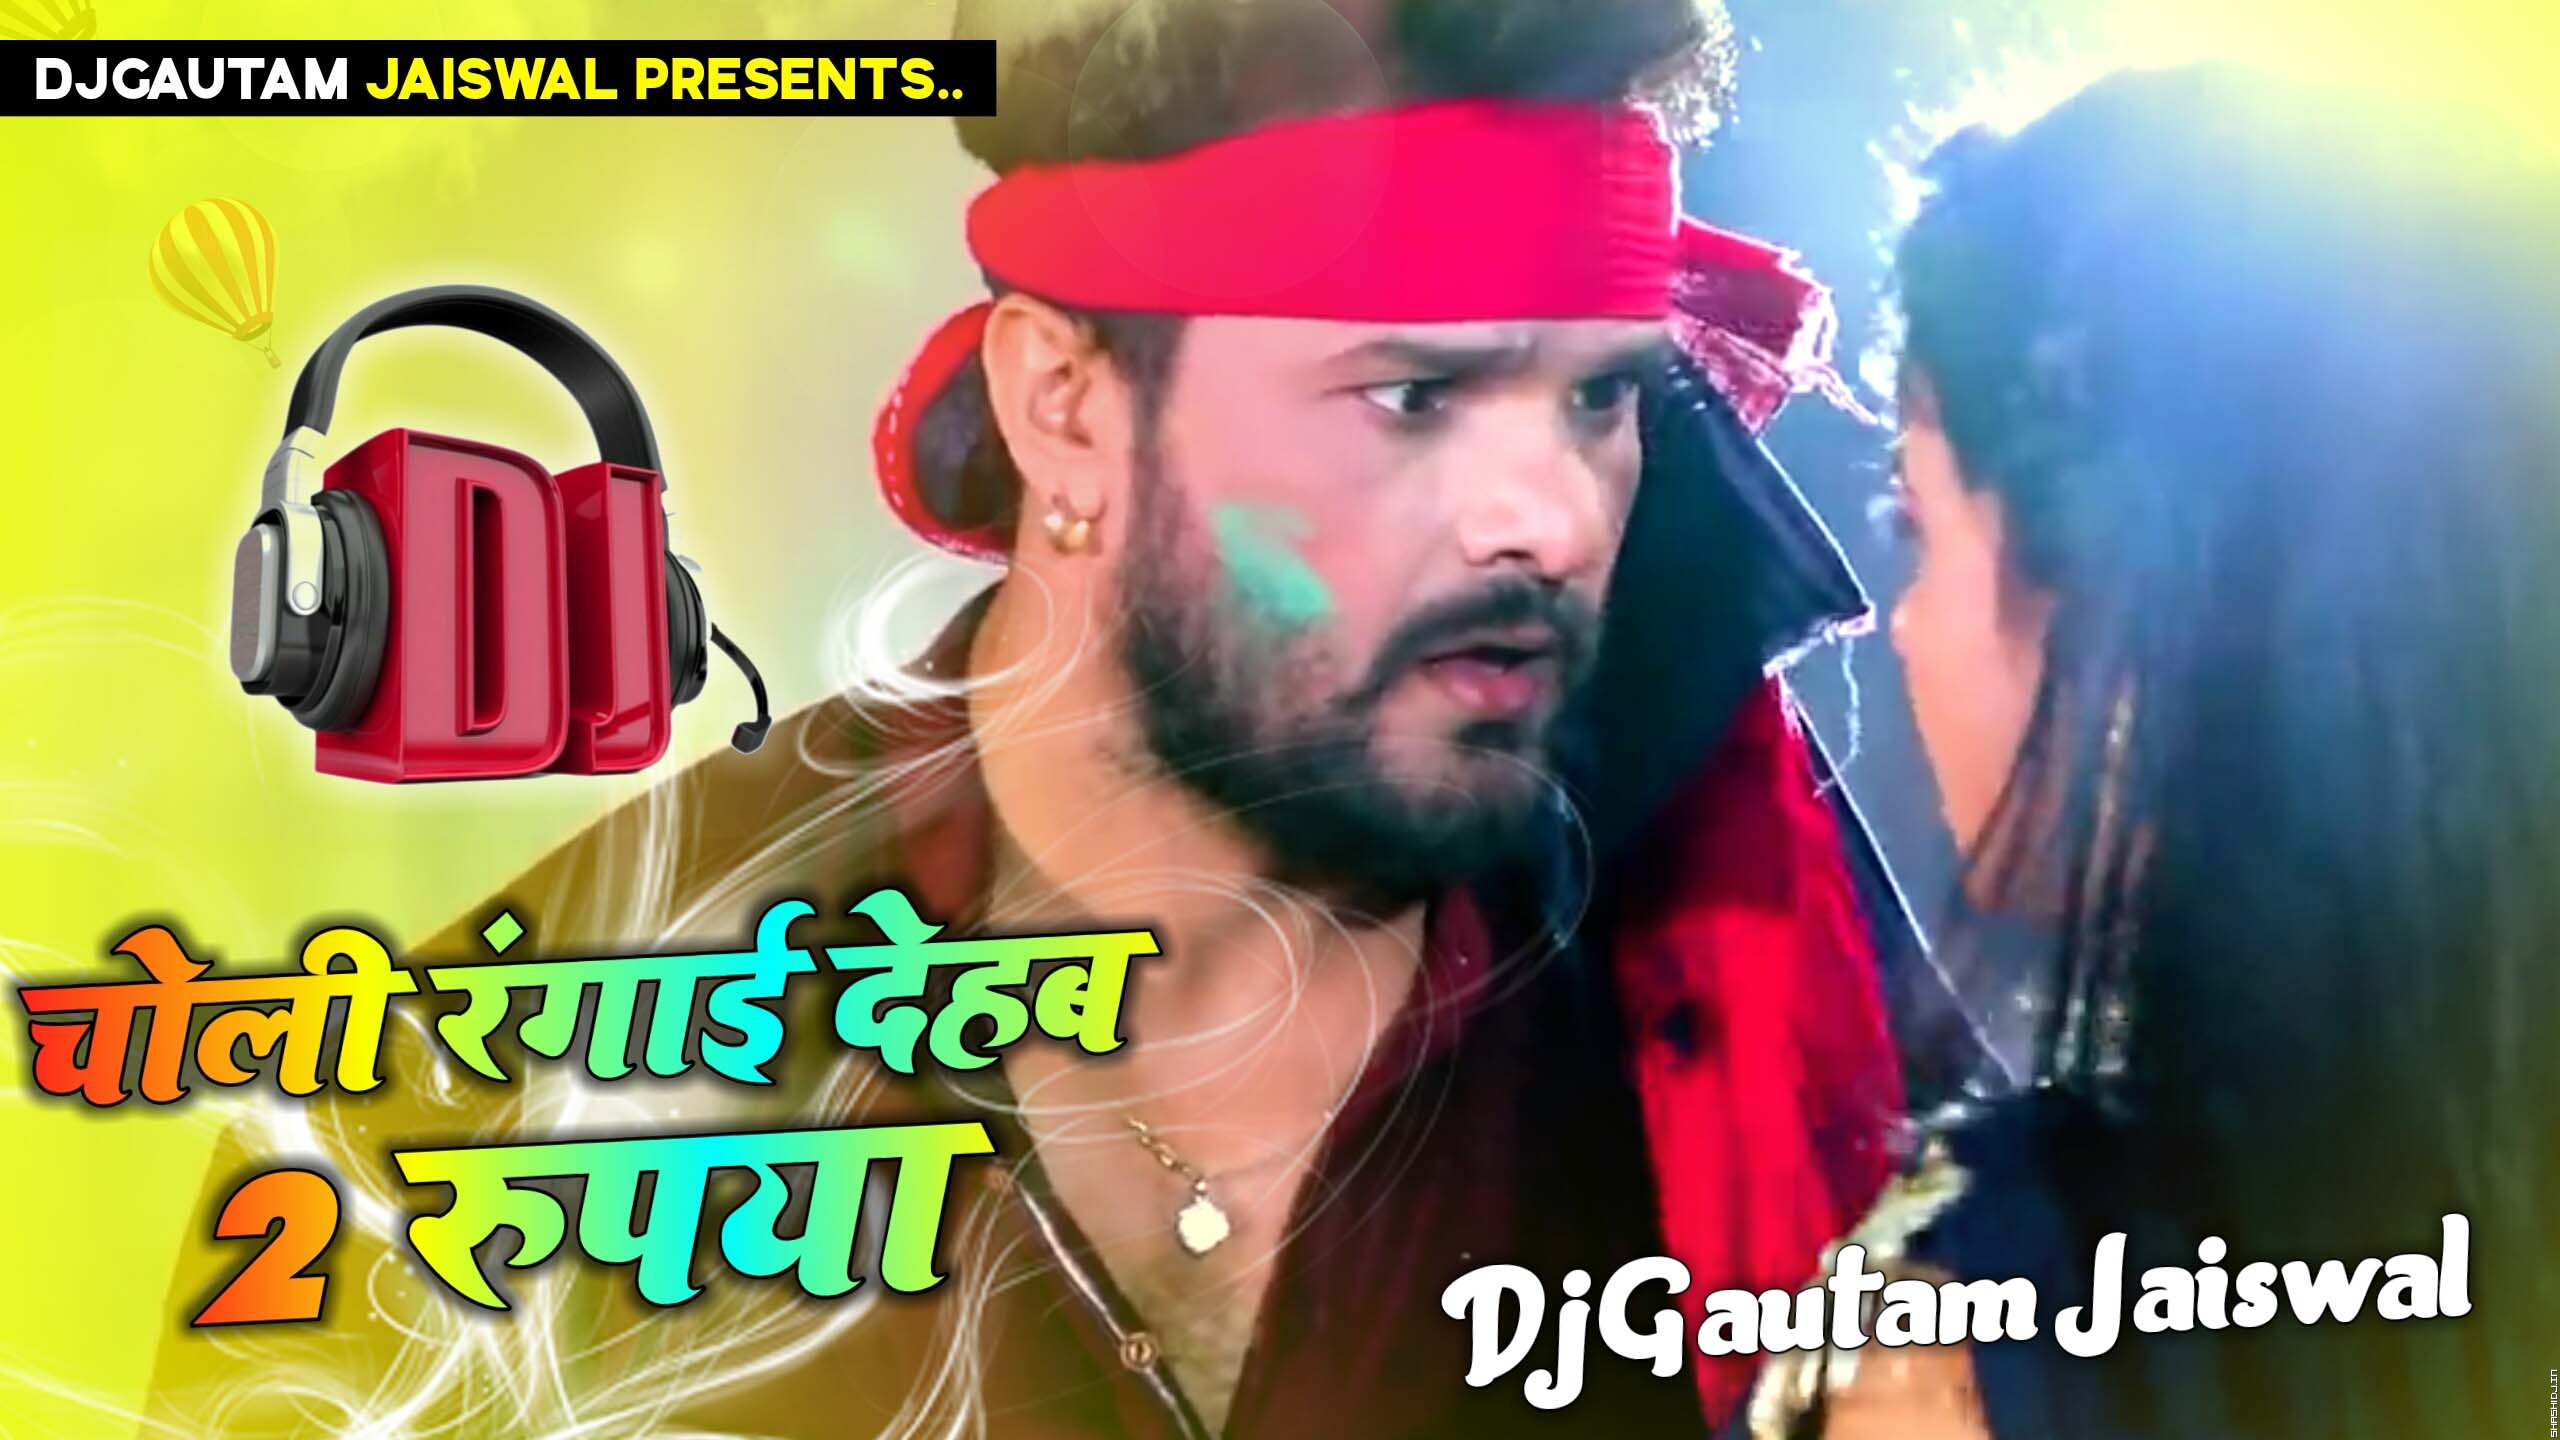 Choli Rangai Dehab Dui Rupaya (Humming Bass Holi Mix) DjGautam Jaiswal.mp3